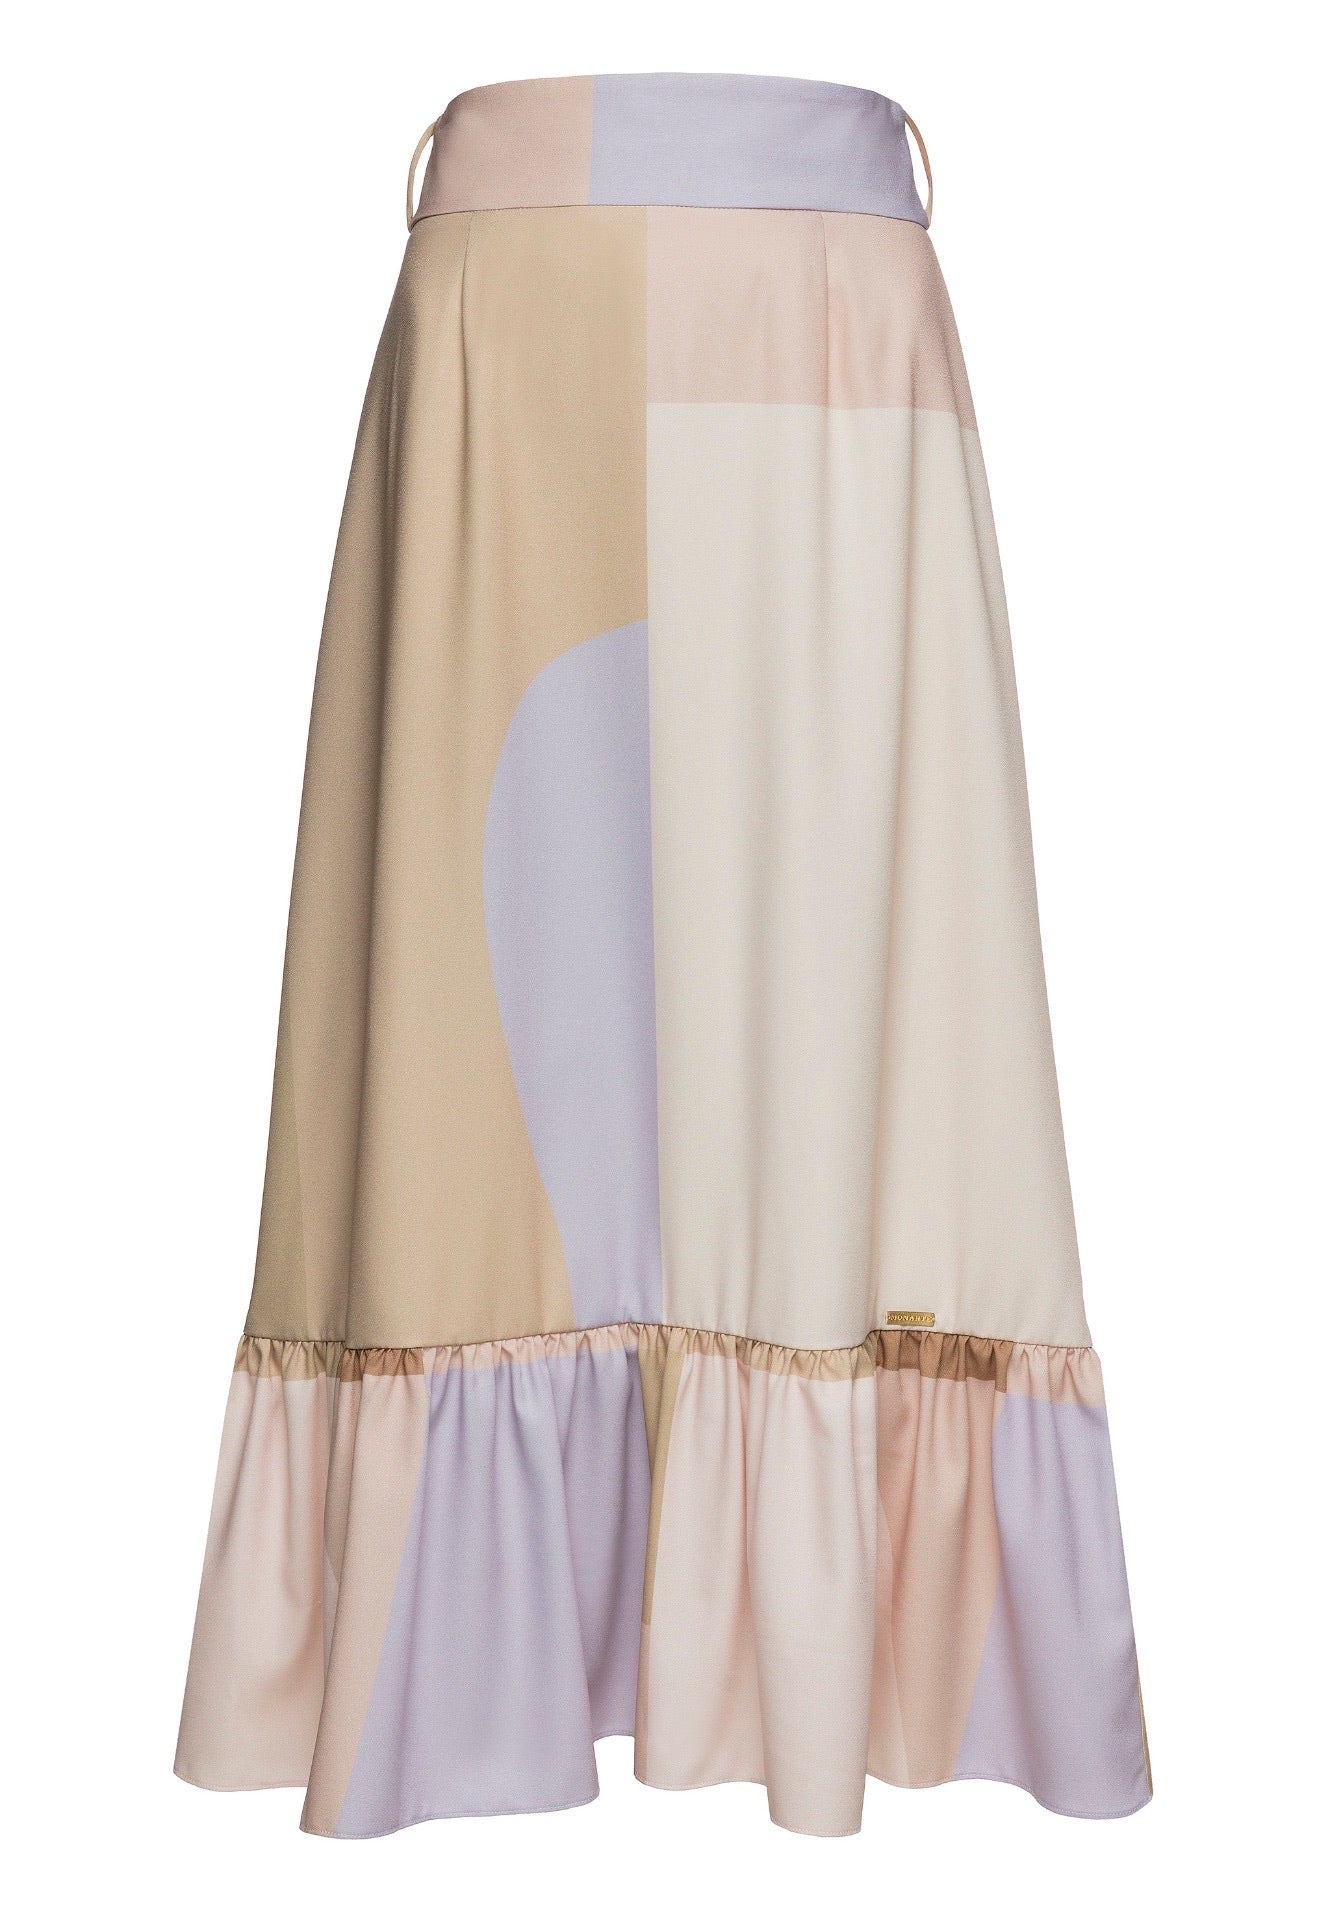 Gender Harmony Skirt - Monarte